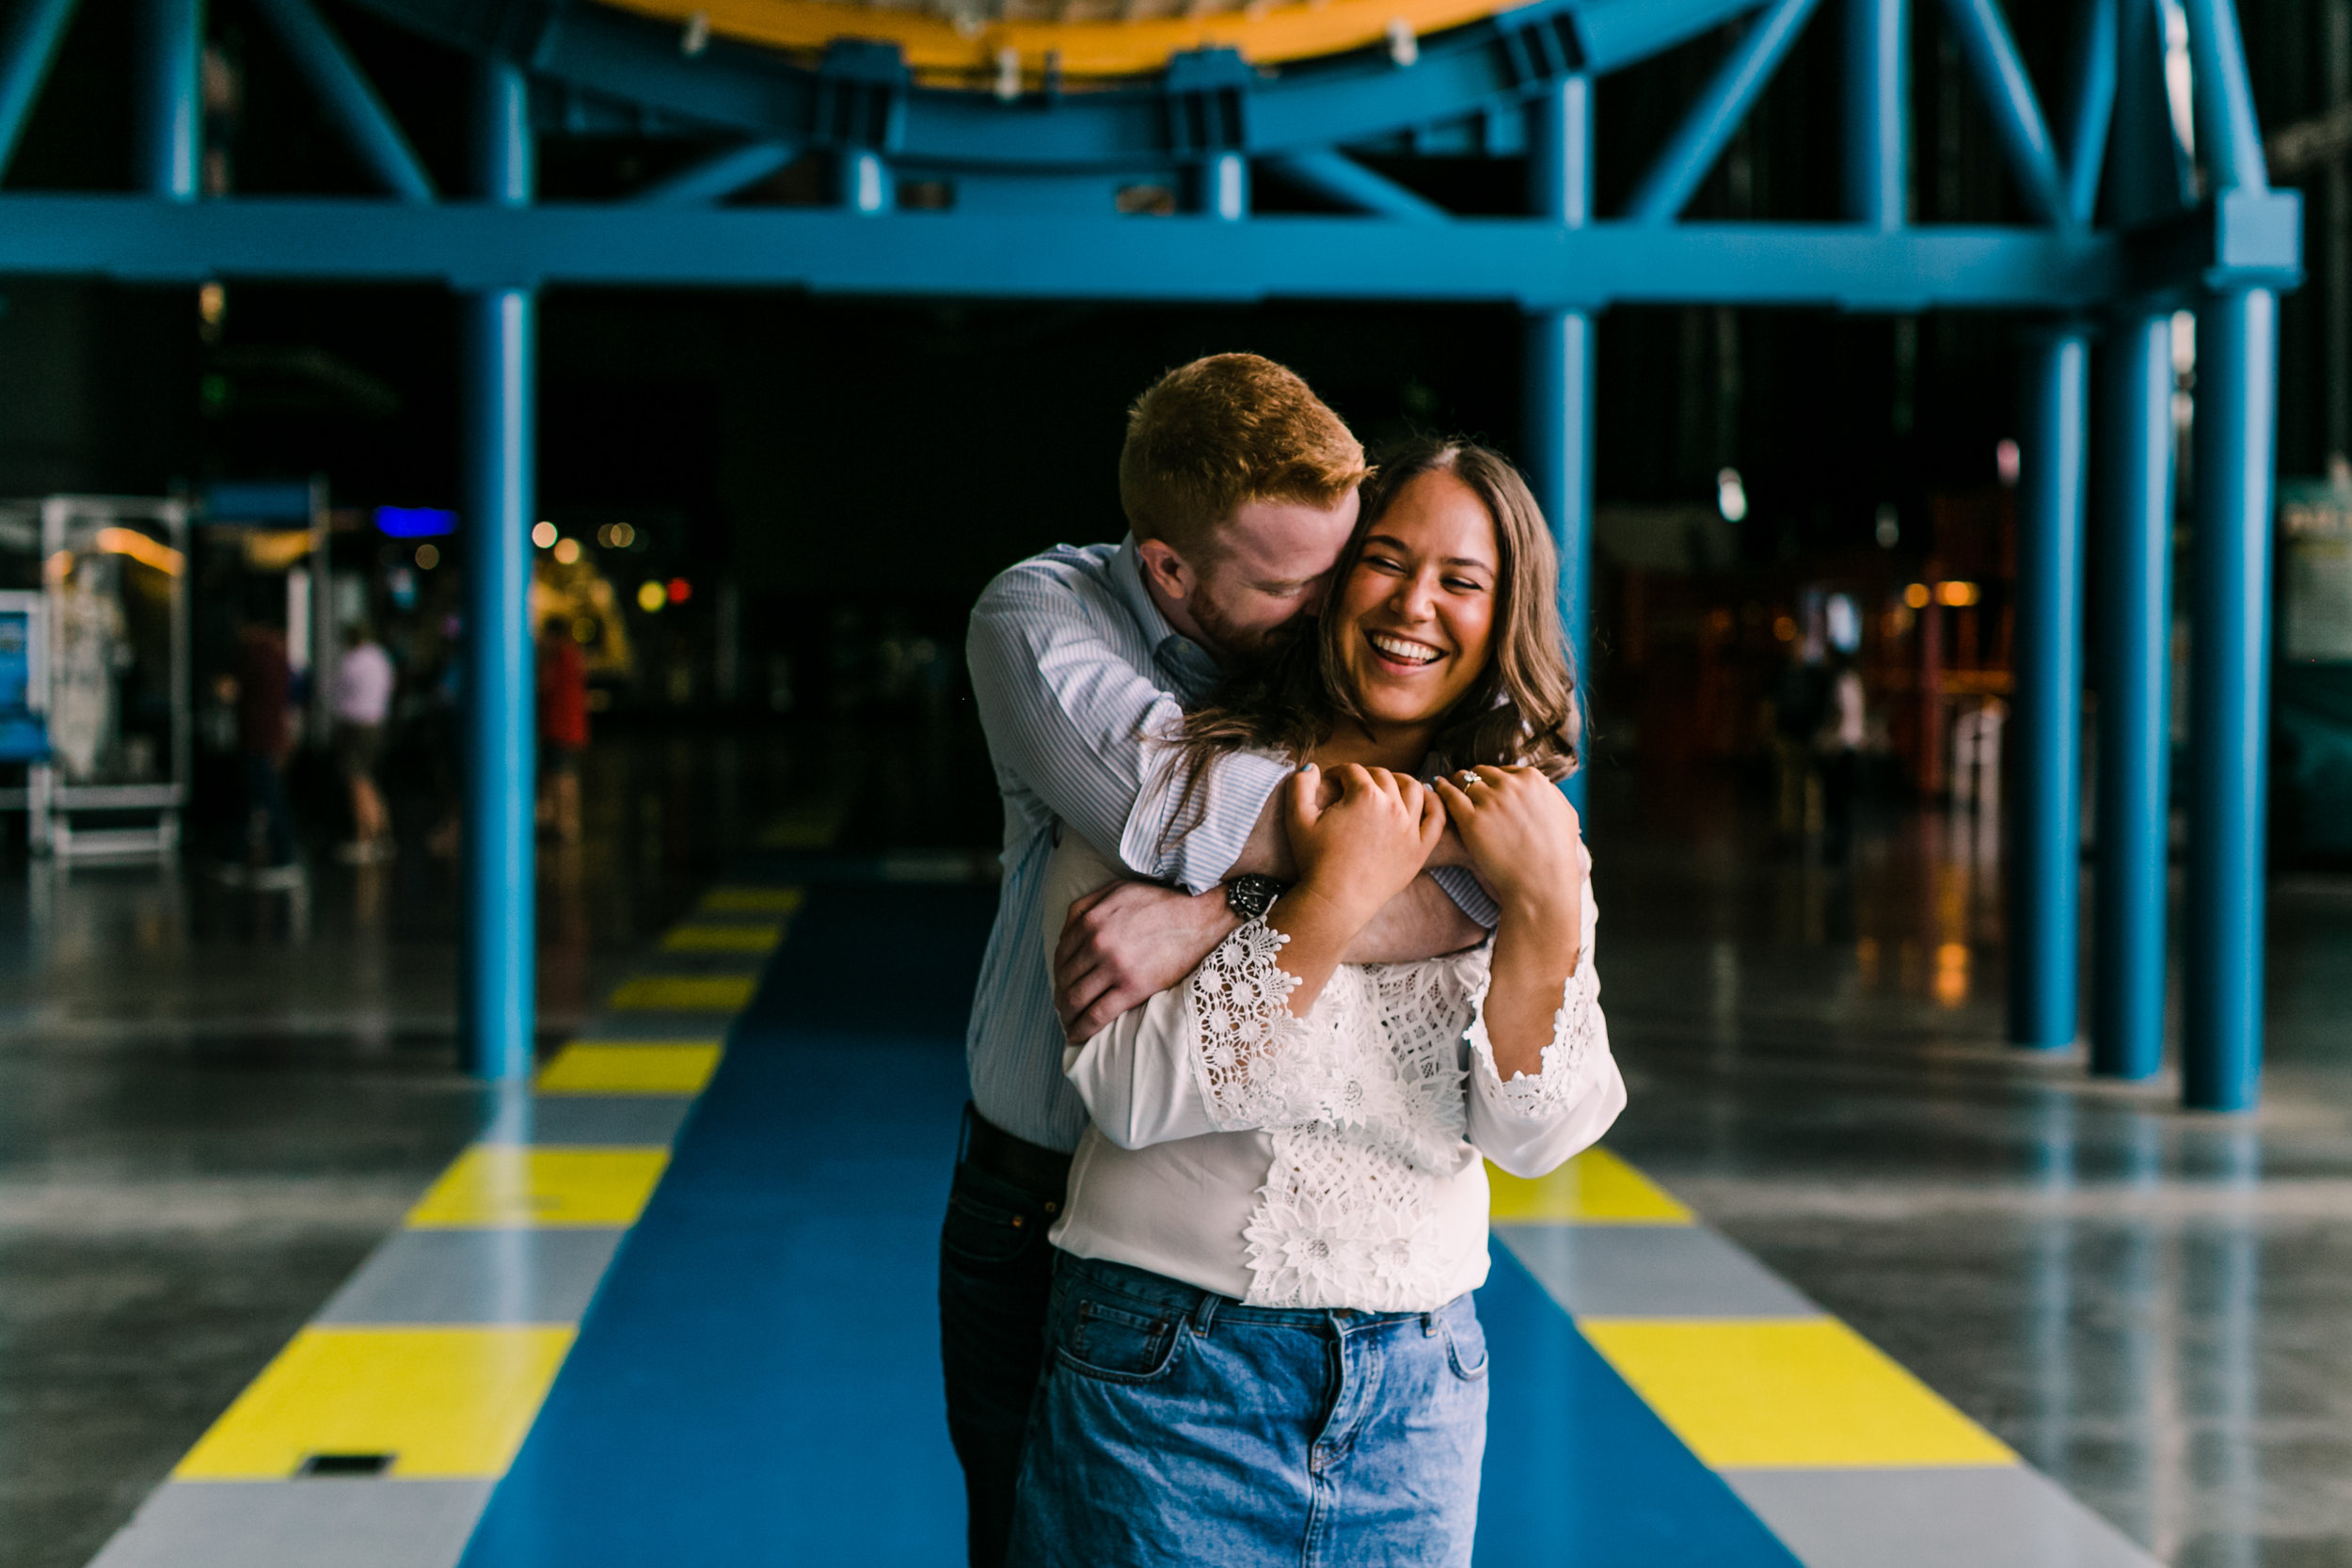 huntsville+alabama+rocket and space center + engagement (9 of 64).jpg